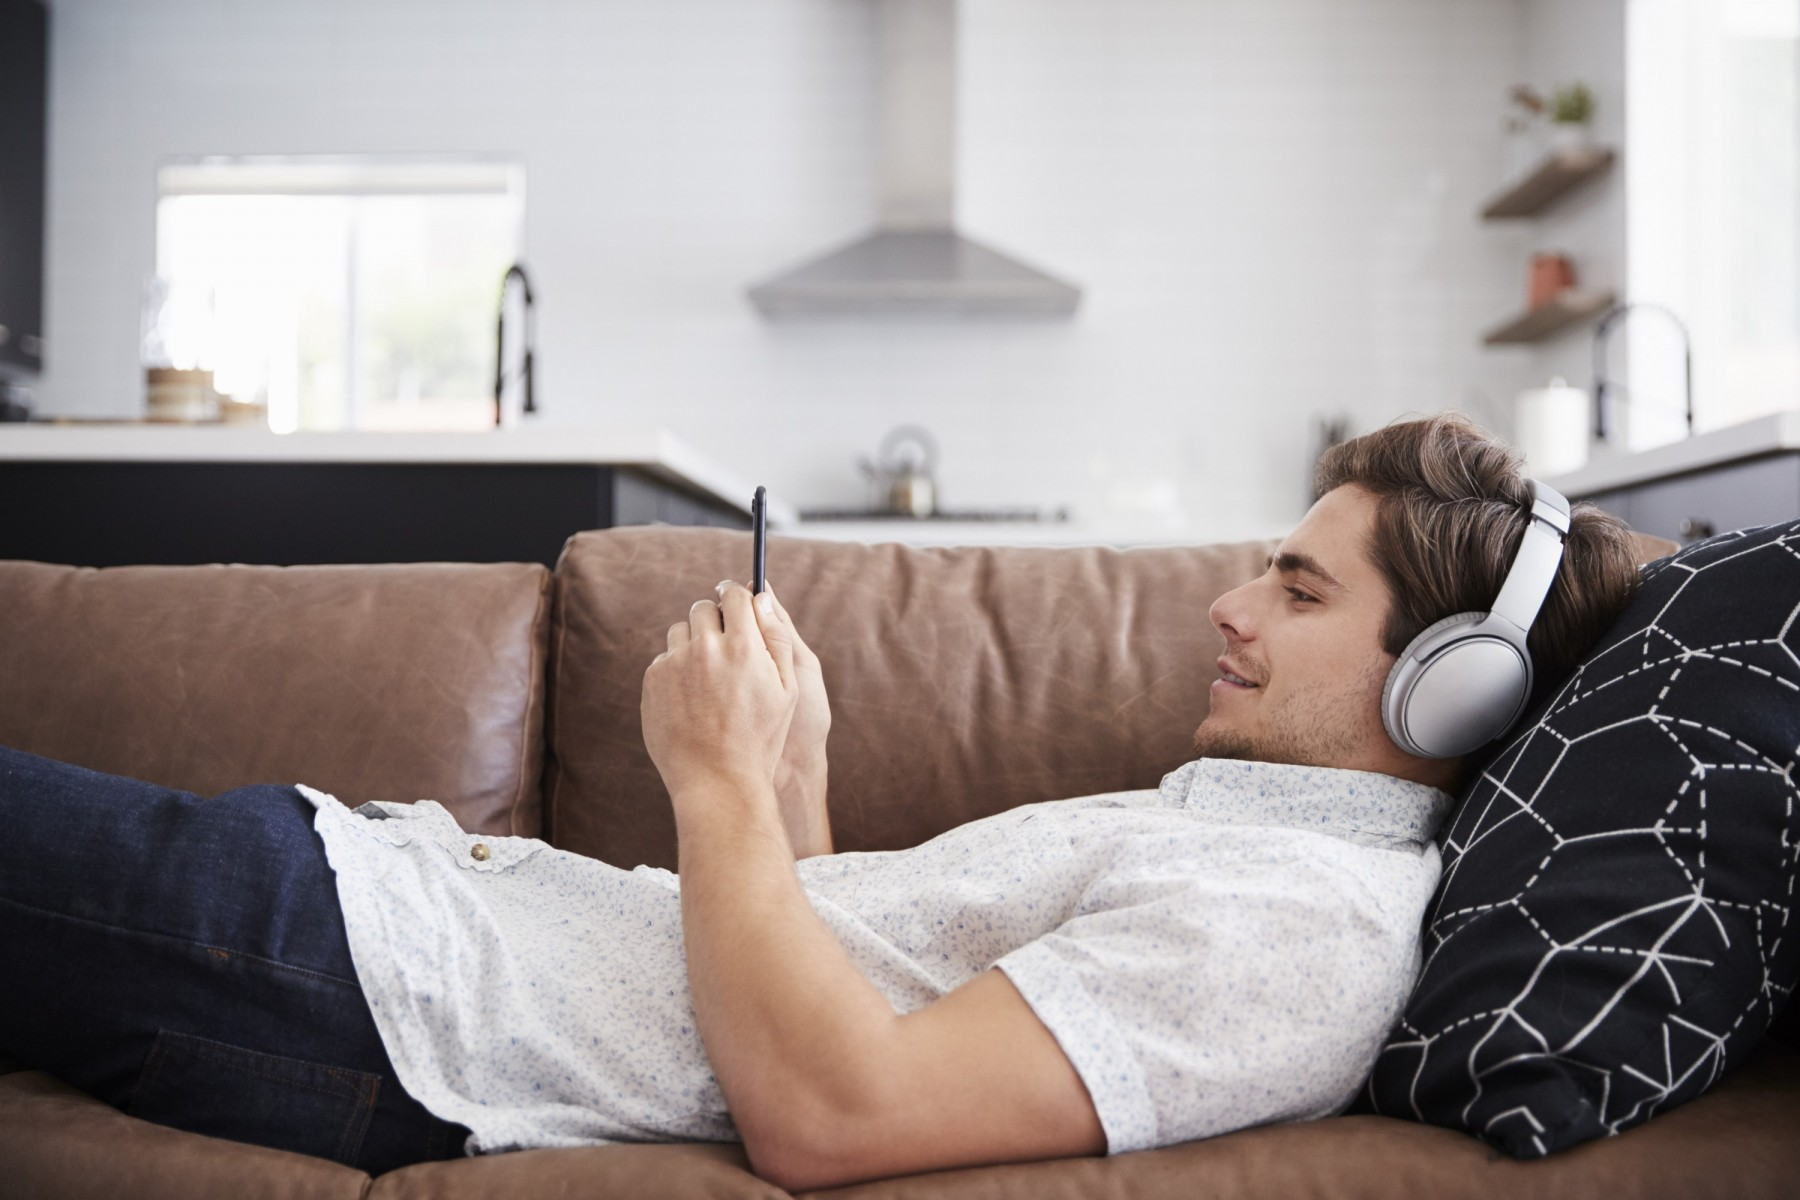 man-wearing-wireless-headphones-lying-on-sofa-at-h-3SGYA4W